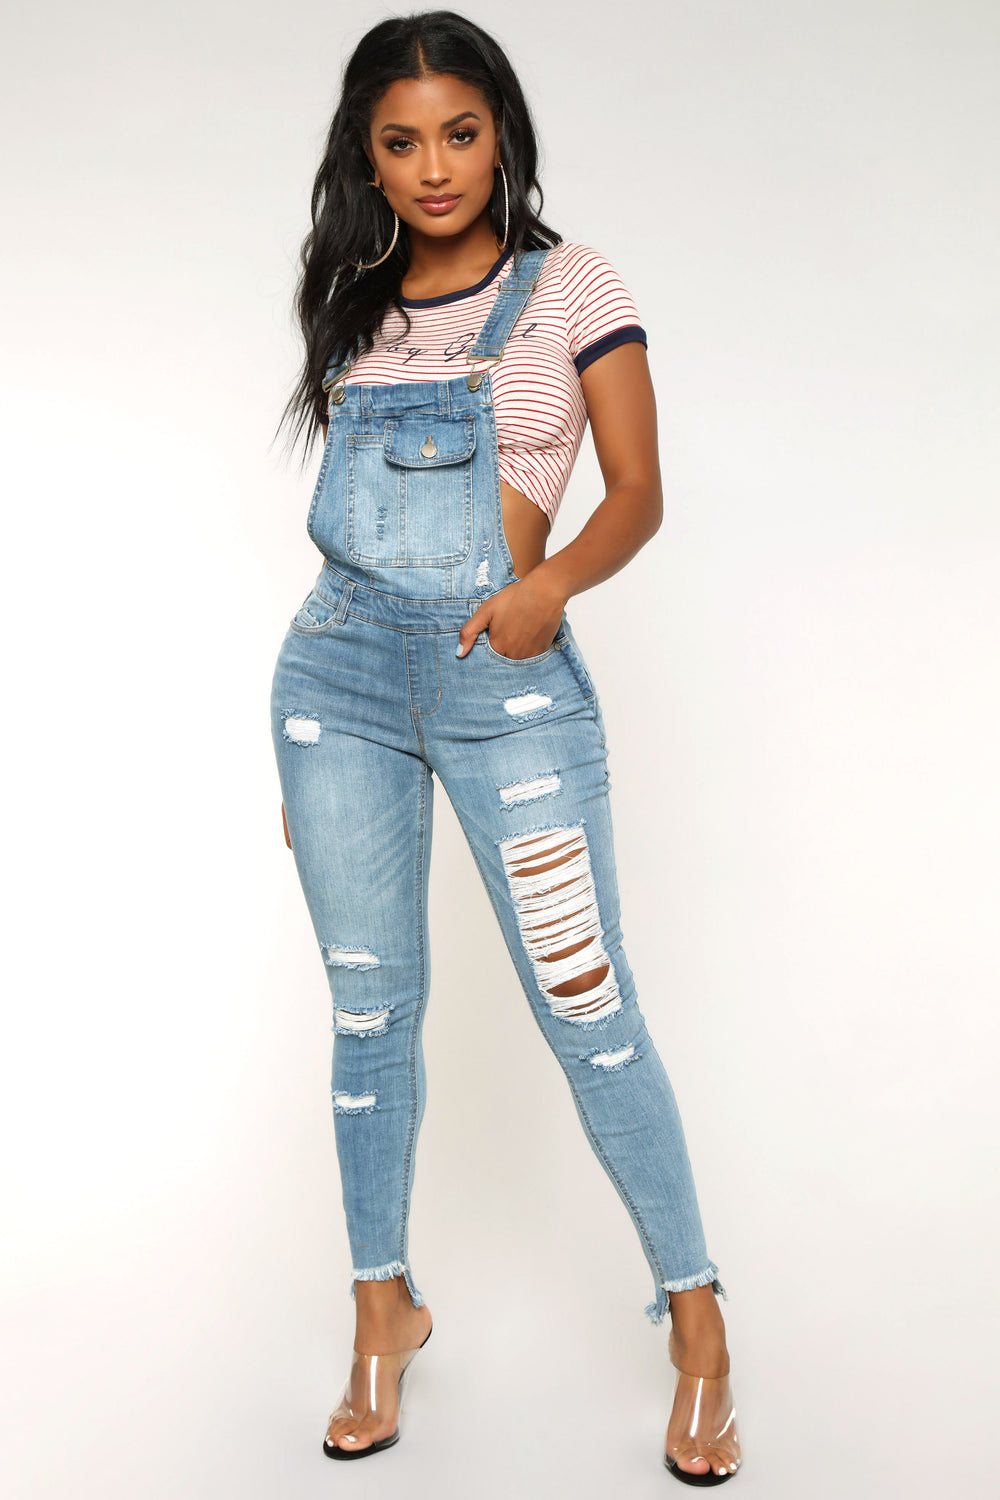 Over It Distressed Overalls - Medium Blue Wash